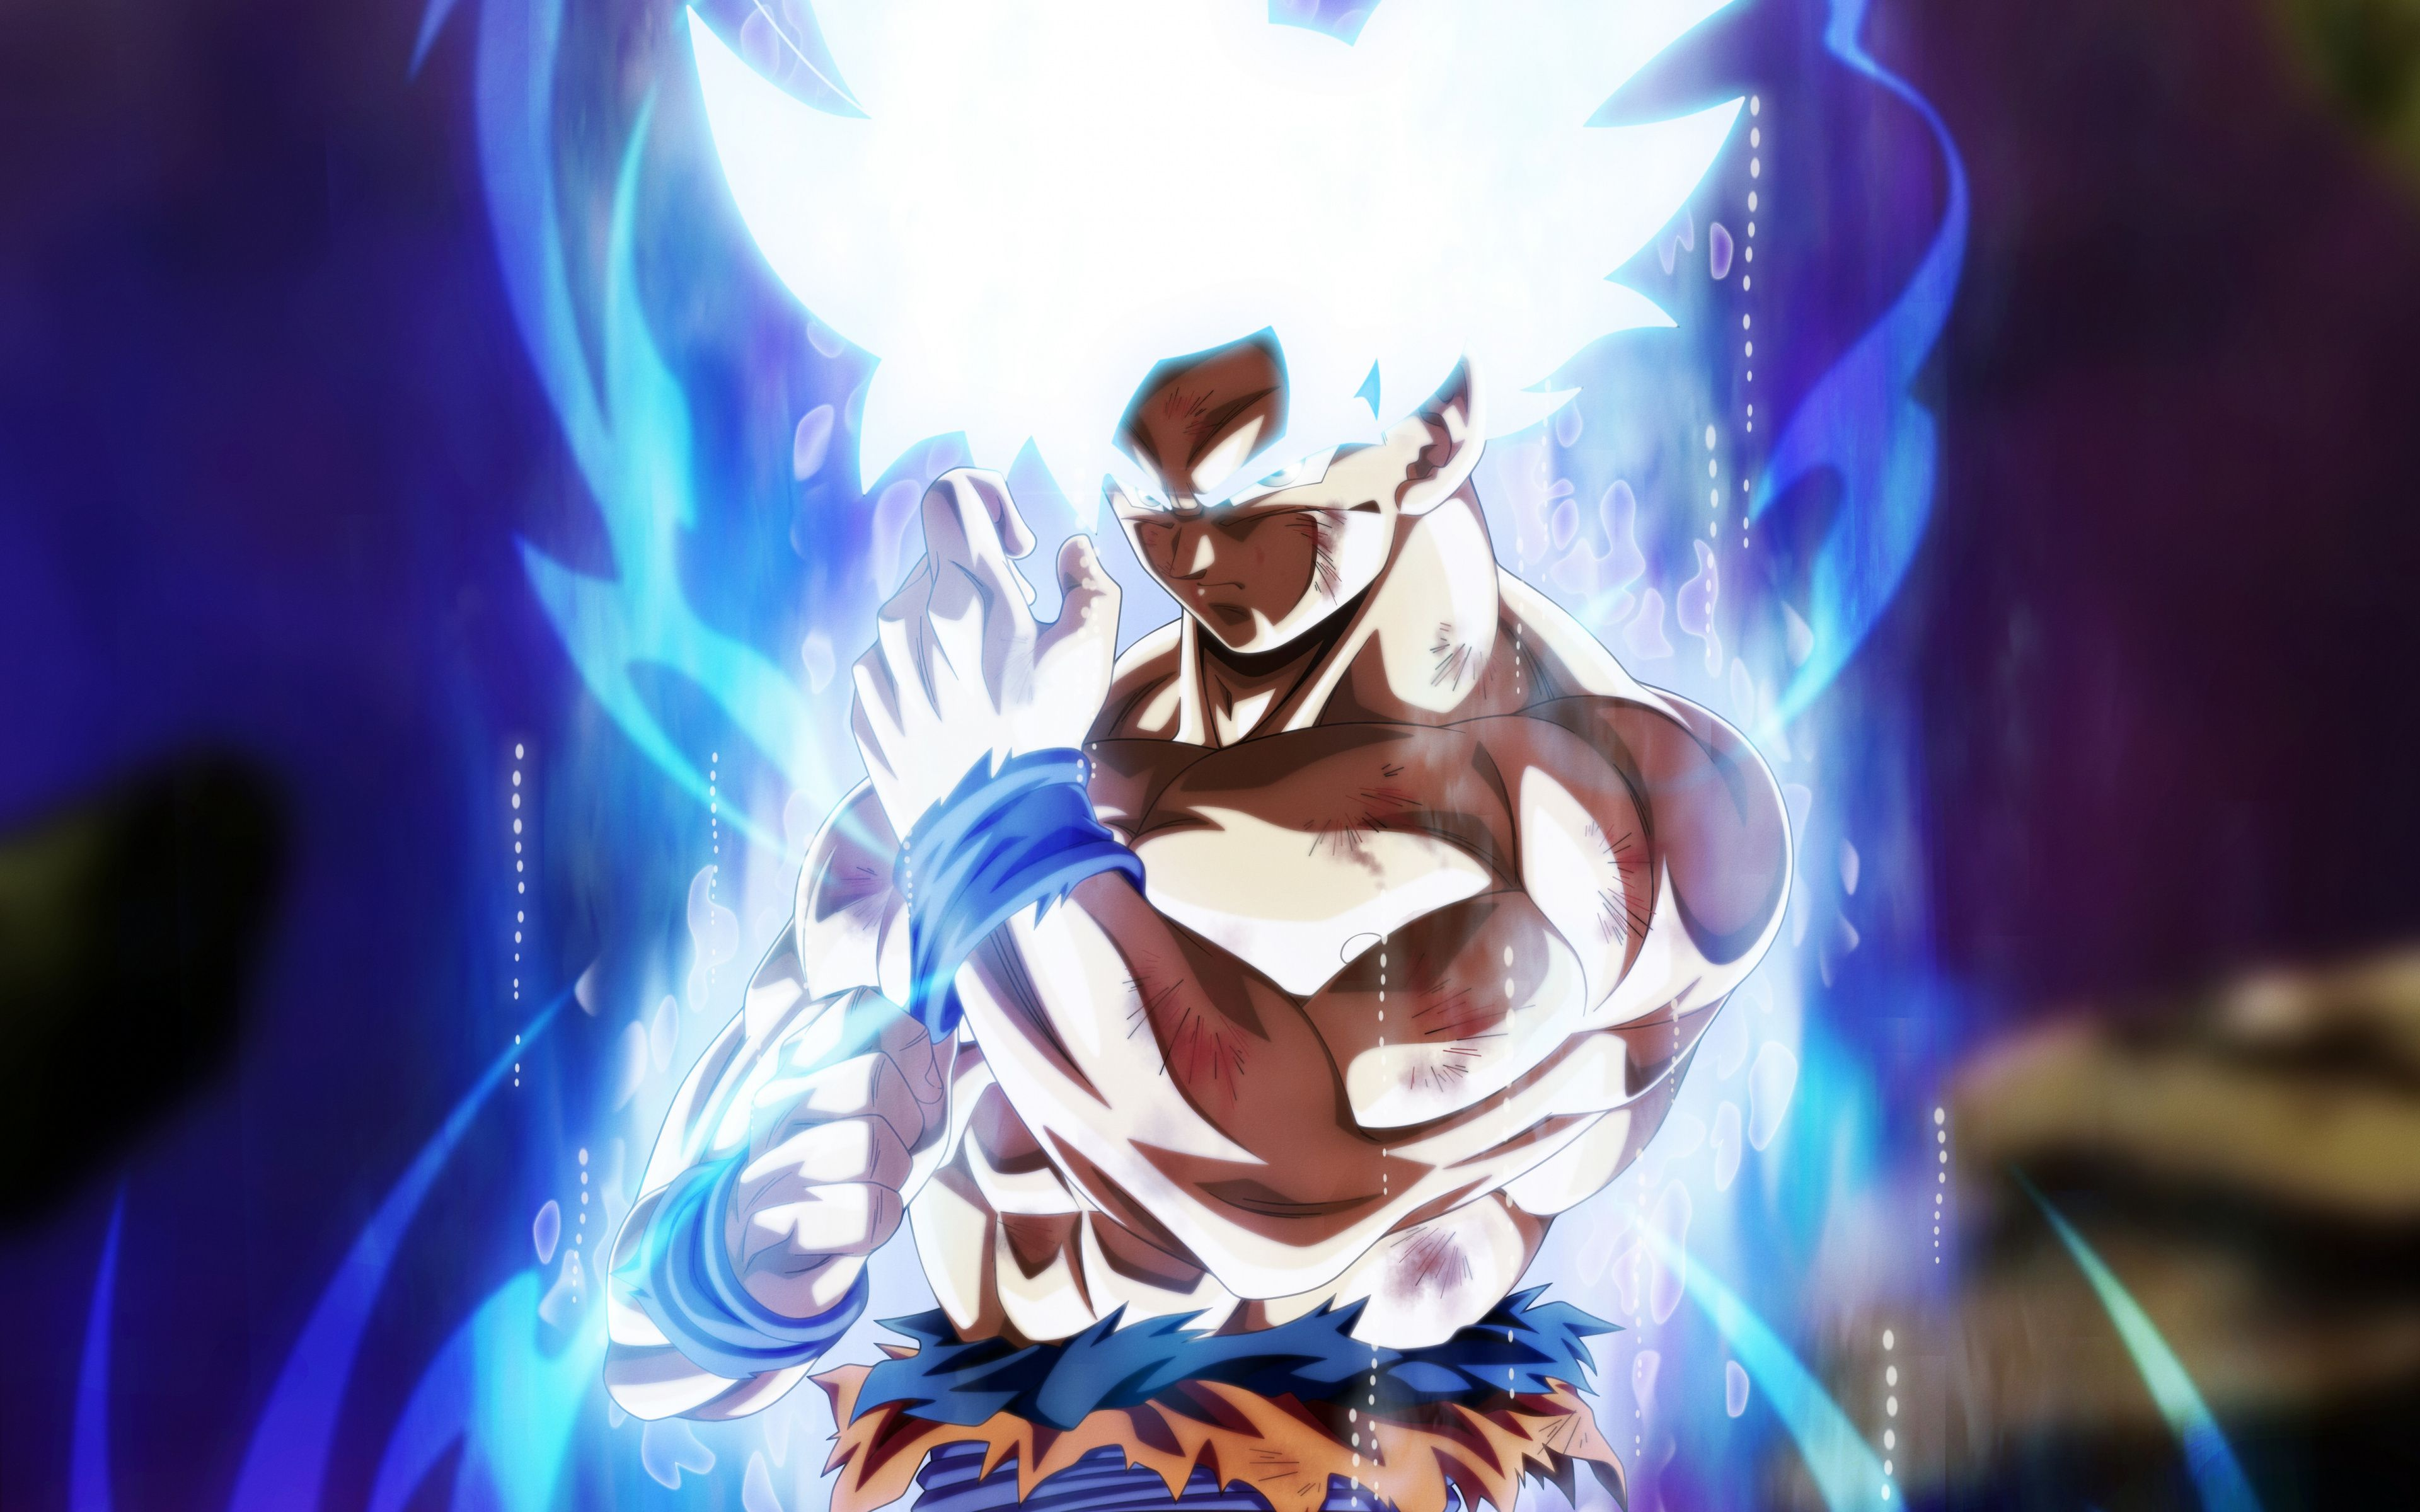 Ultra Hd Dragon Ball Wallpapers 4k Download 3840x2400 Wallpaper Goku Dragon Ball S Dragon Ball Super Wallpapers Dragon Ball Wallpapers Anime Dragon Ball Super